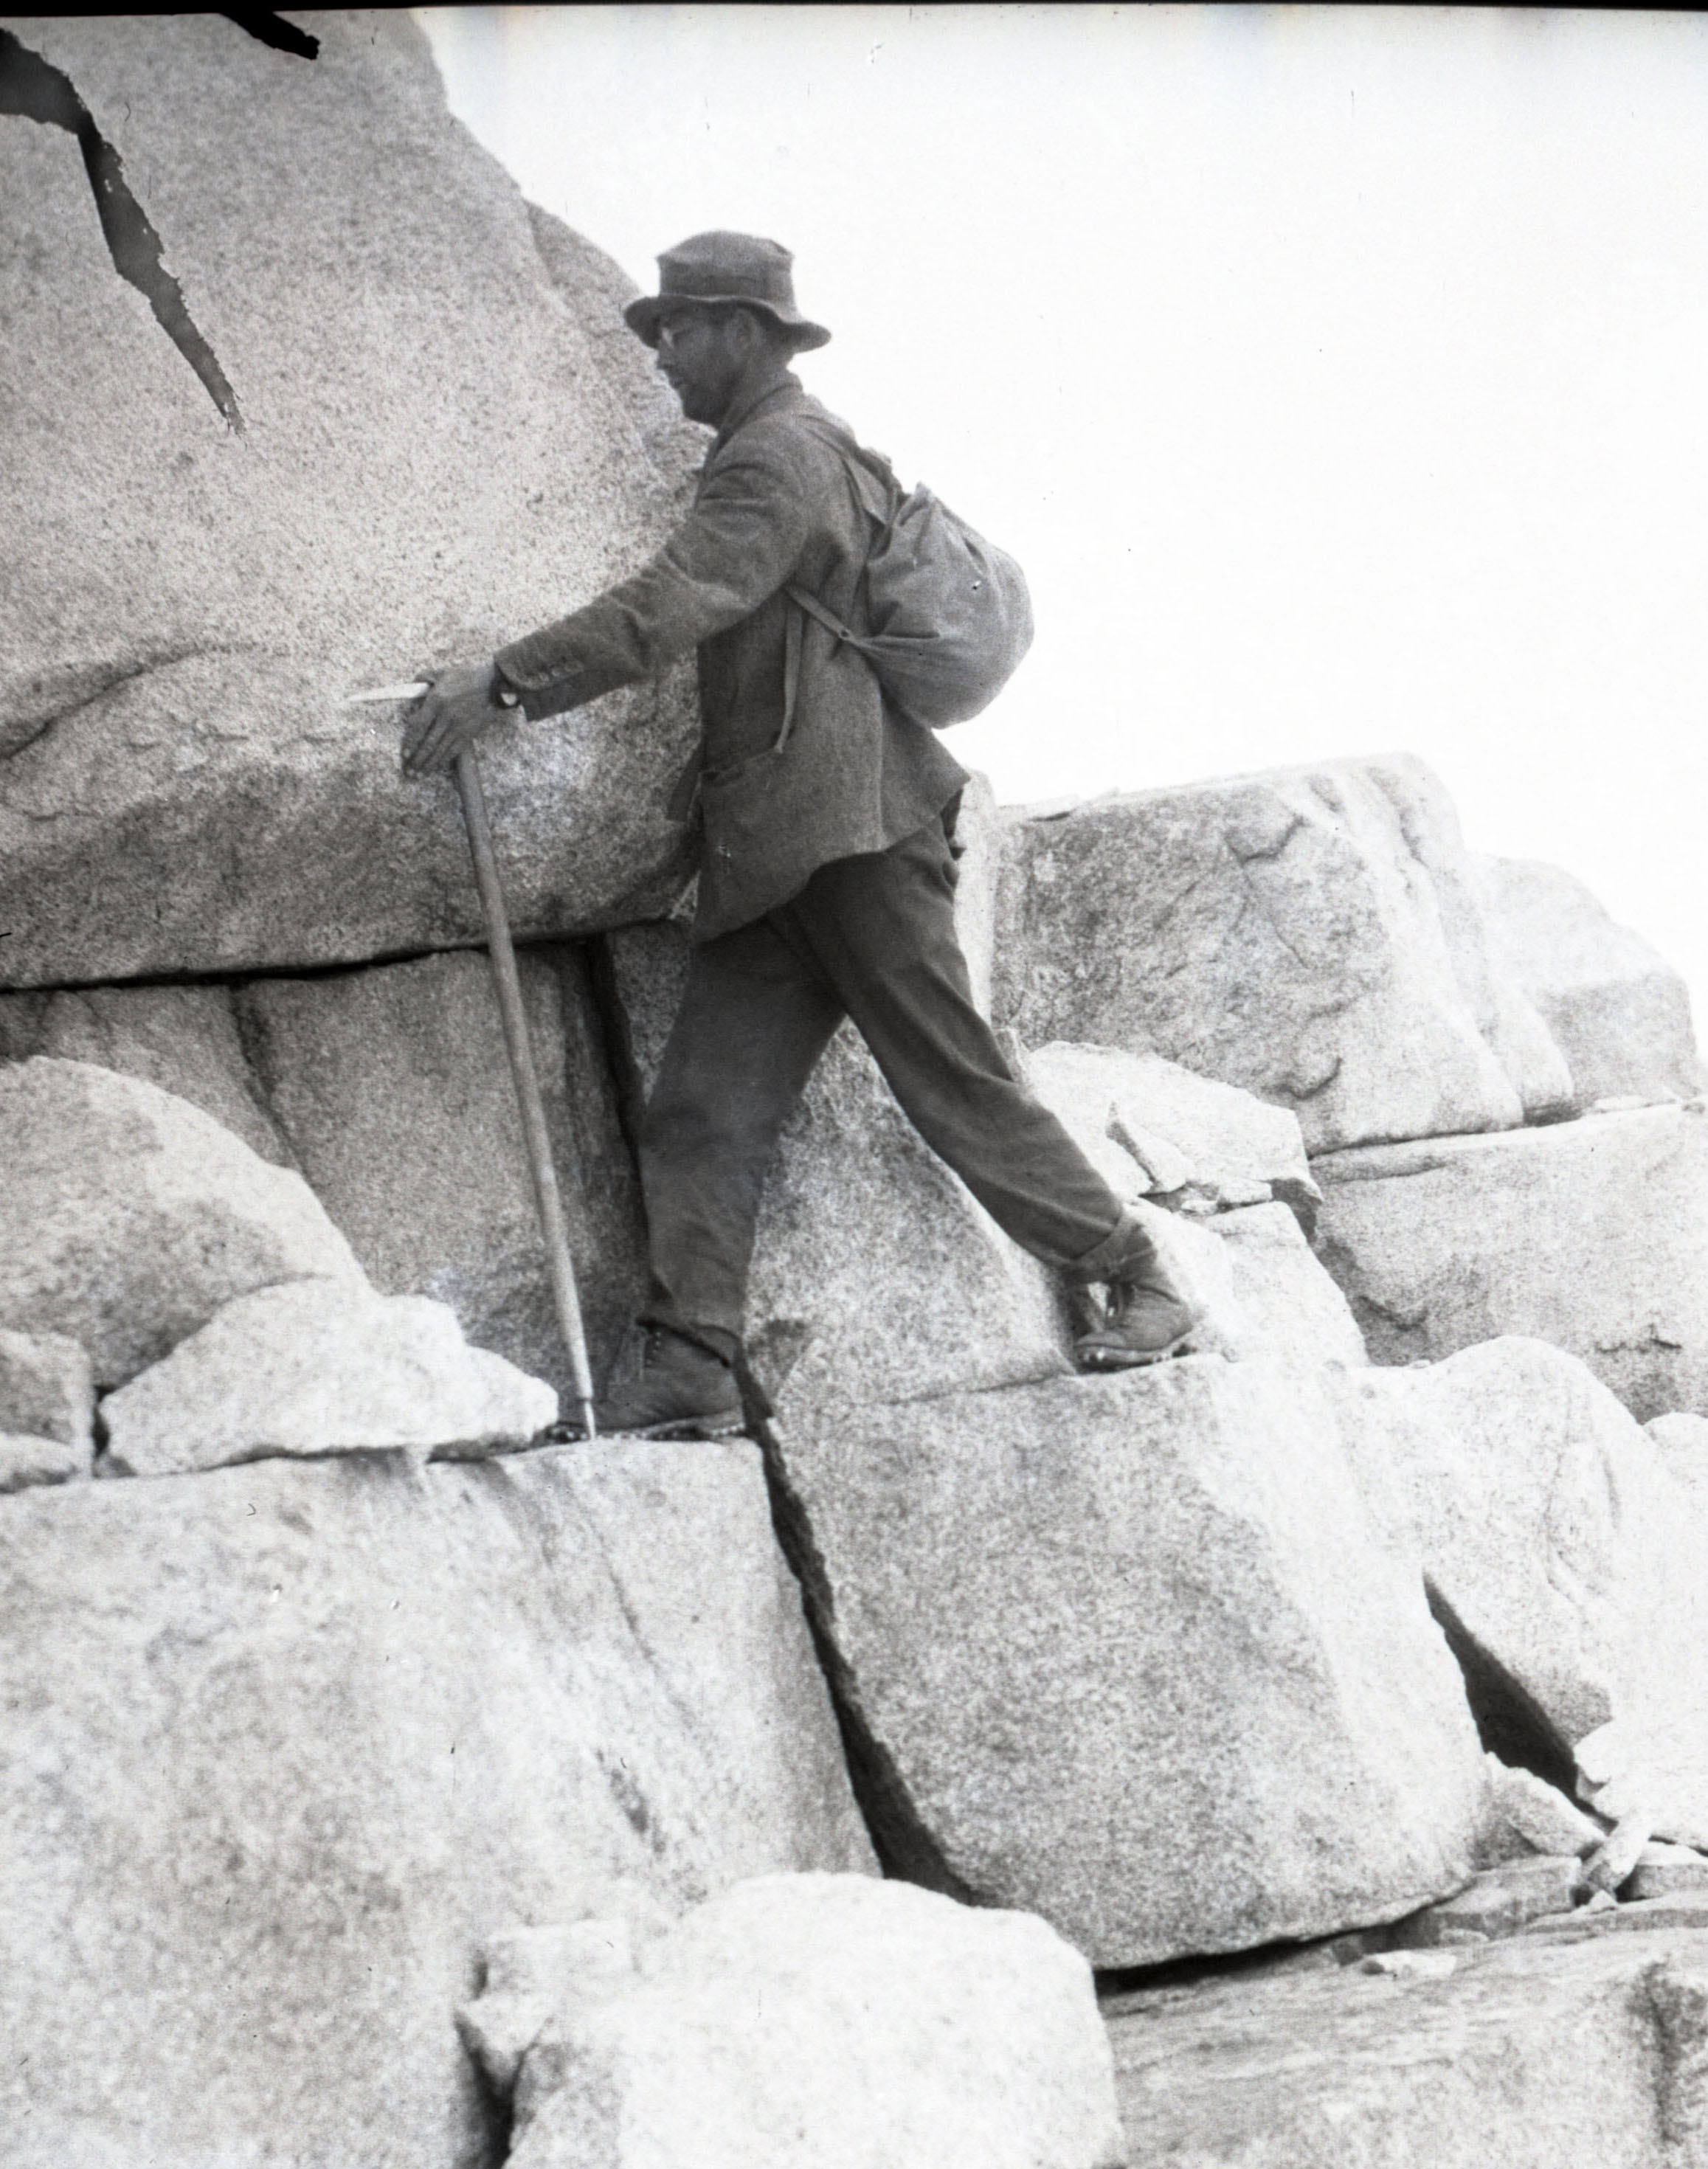 A climber ascending a rock face, using his ice axe as a walking stick. From the collections of the American Alpine Club.